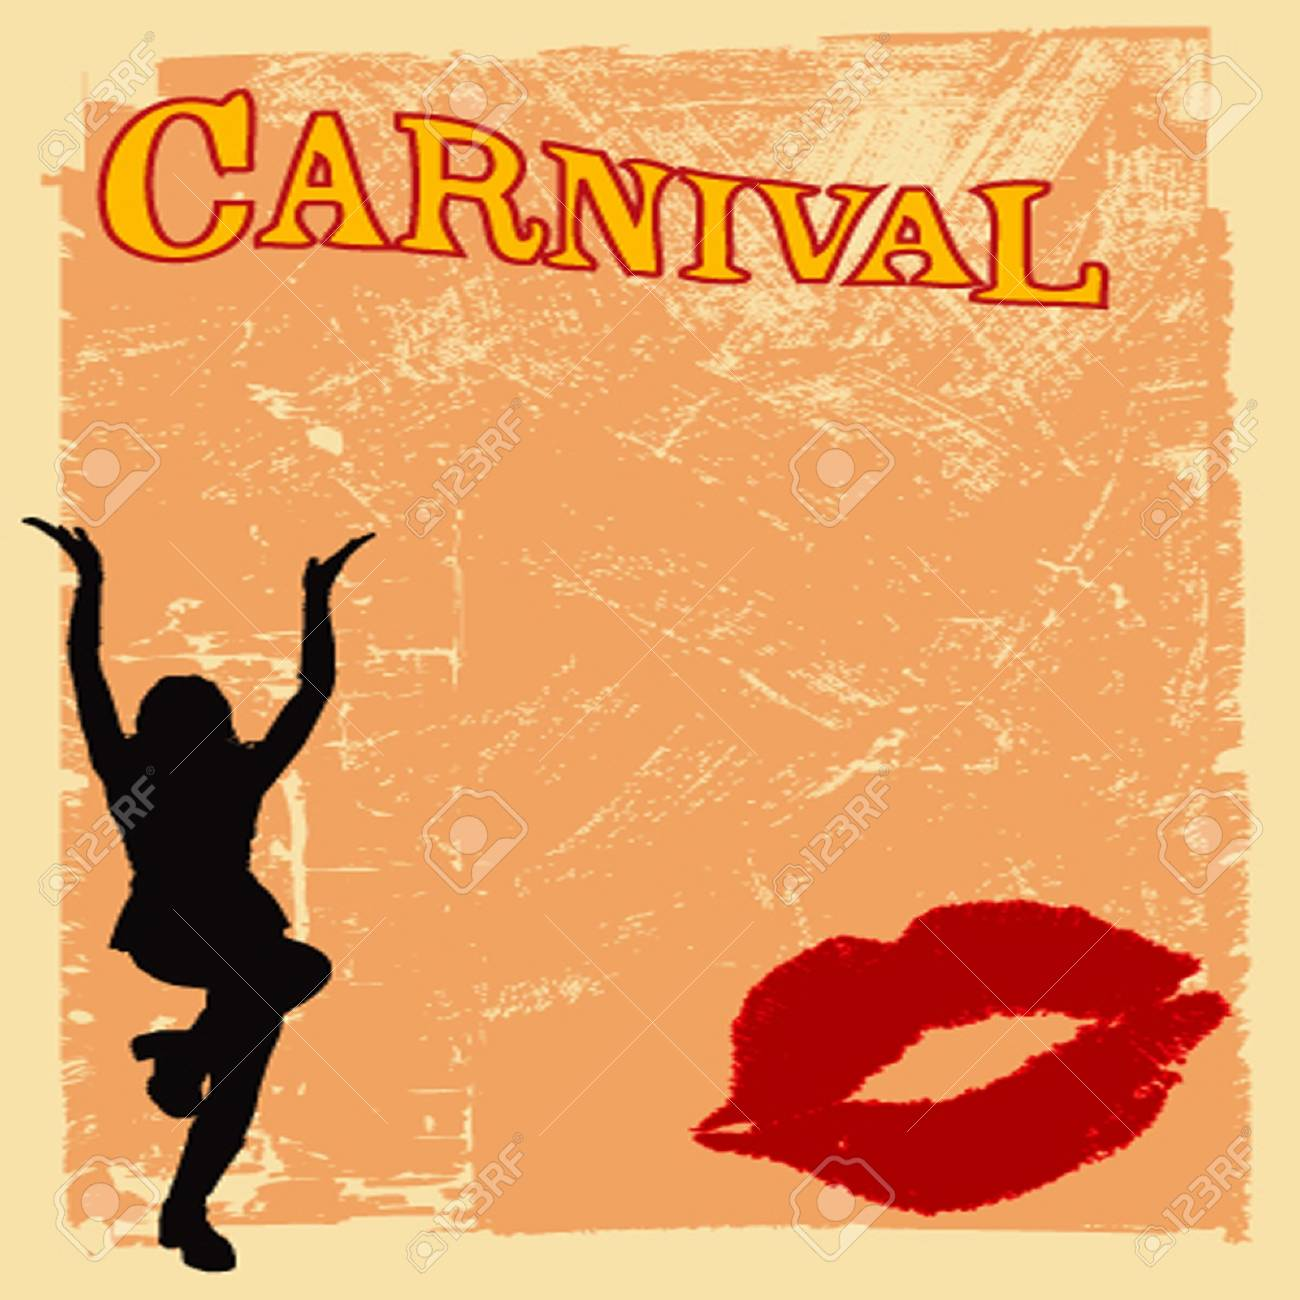 carnival clipart.html